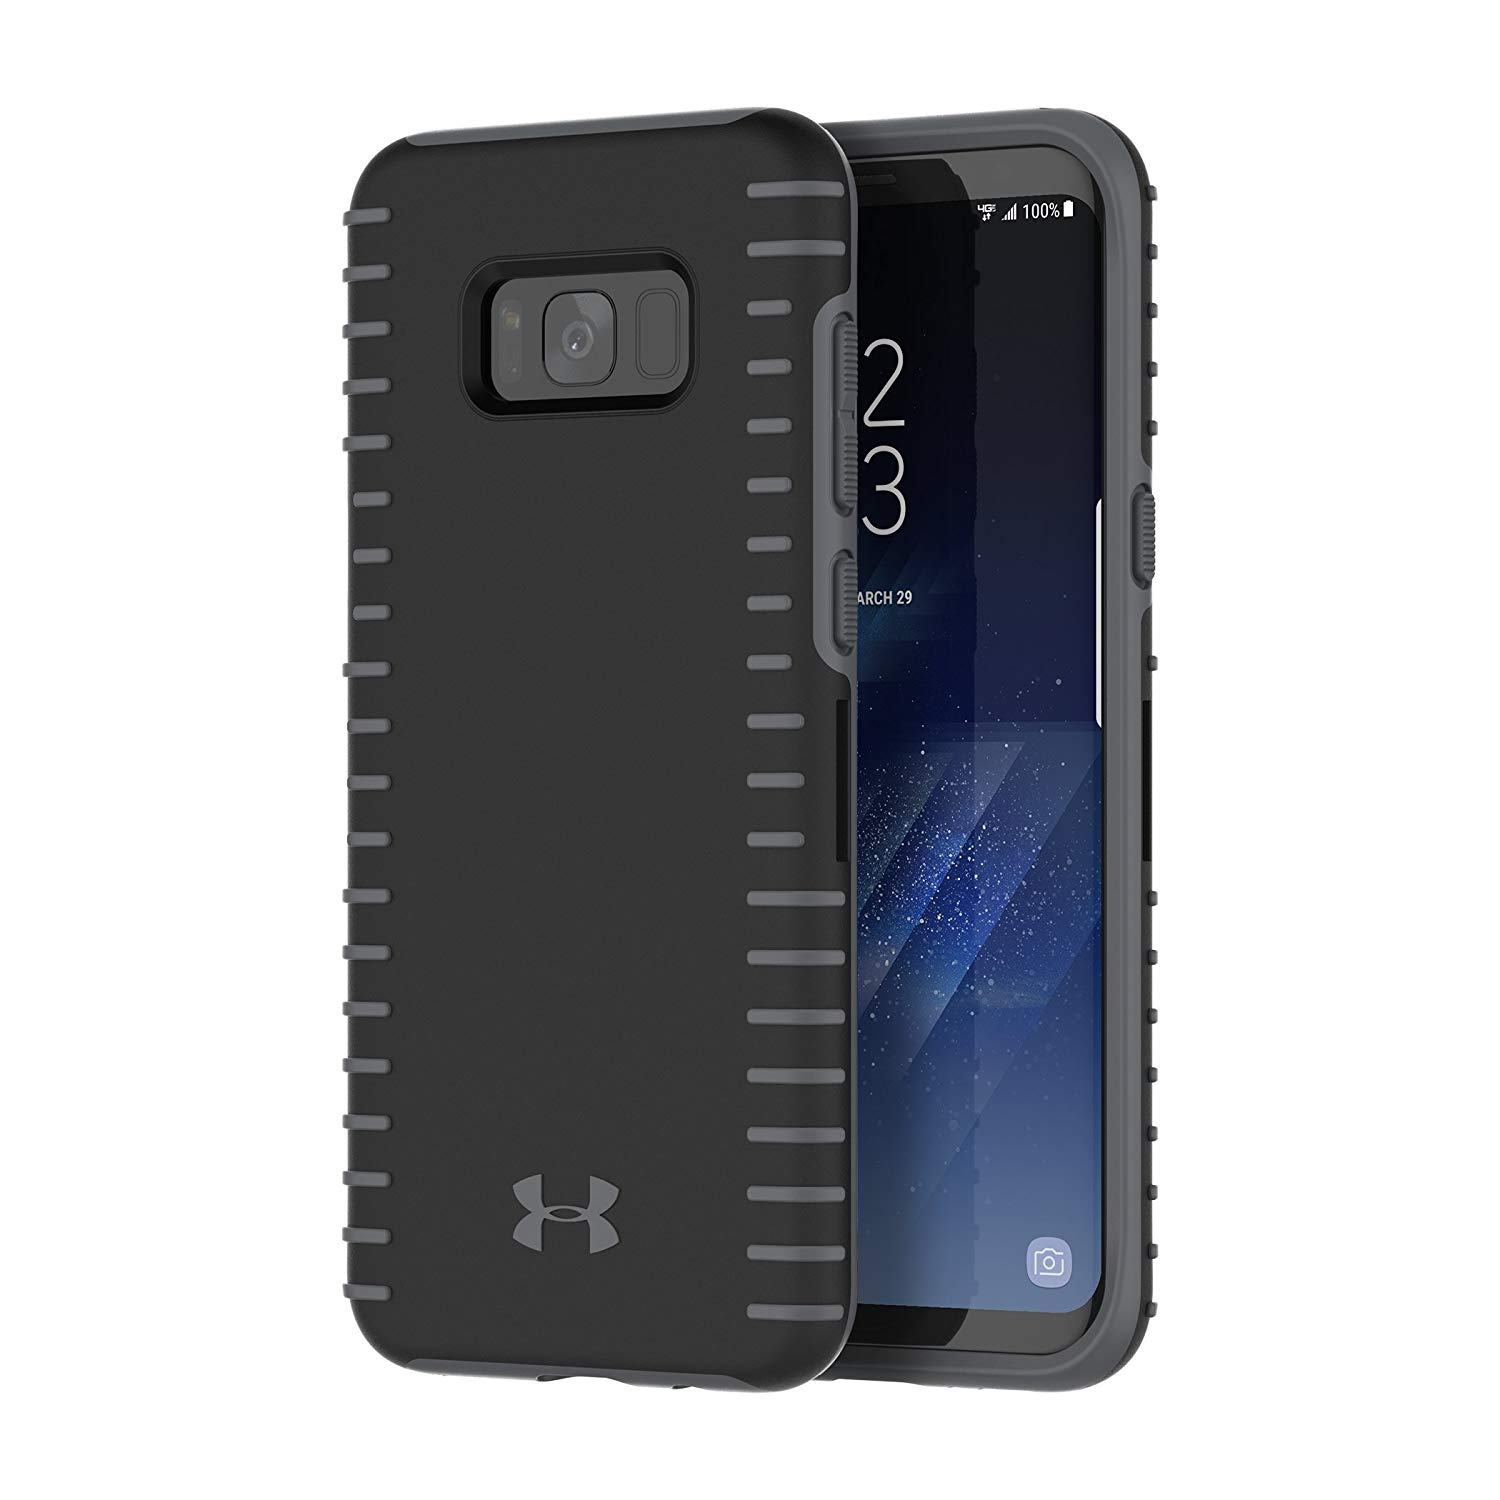 ced7c4f5 Under Armour UA Protect Grip Case for Samsung Galaxy S8+ - Black/Graphite